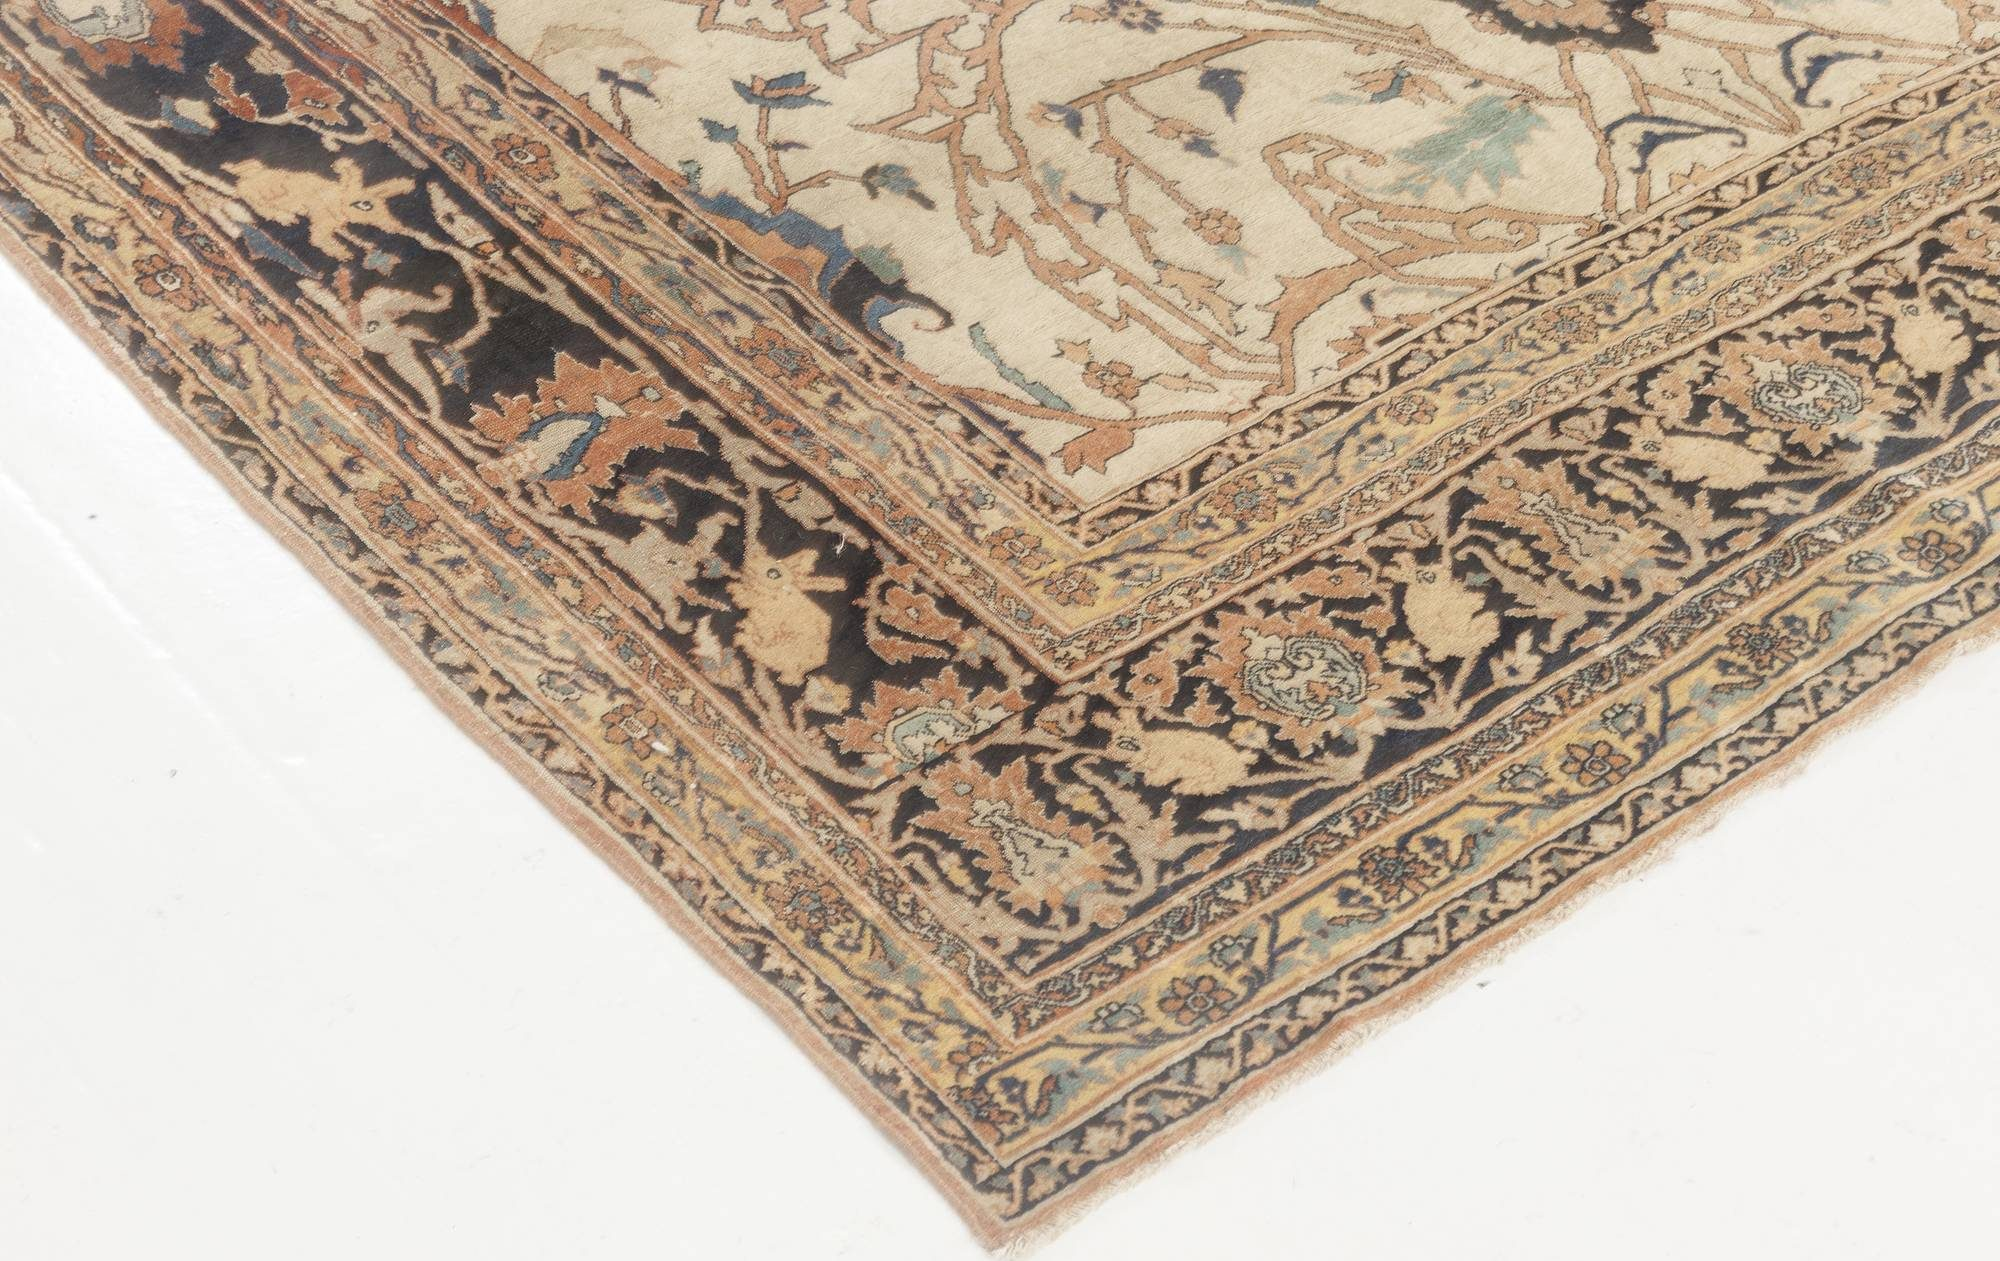 19th Century Persian Tabriz Cream, Brown, Gray and Black Rug BB6898